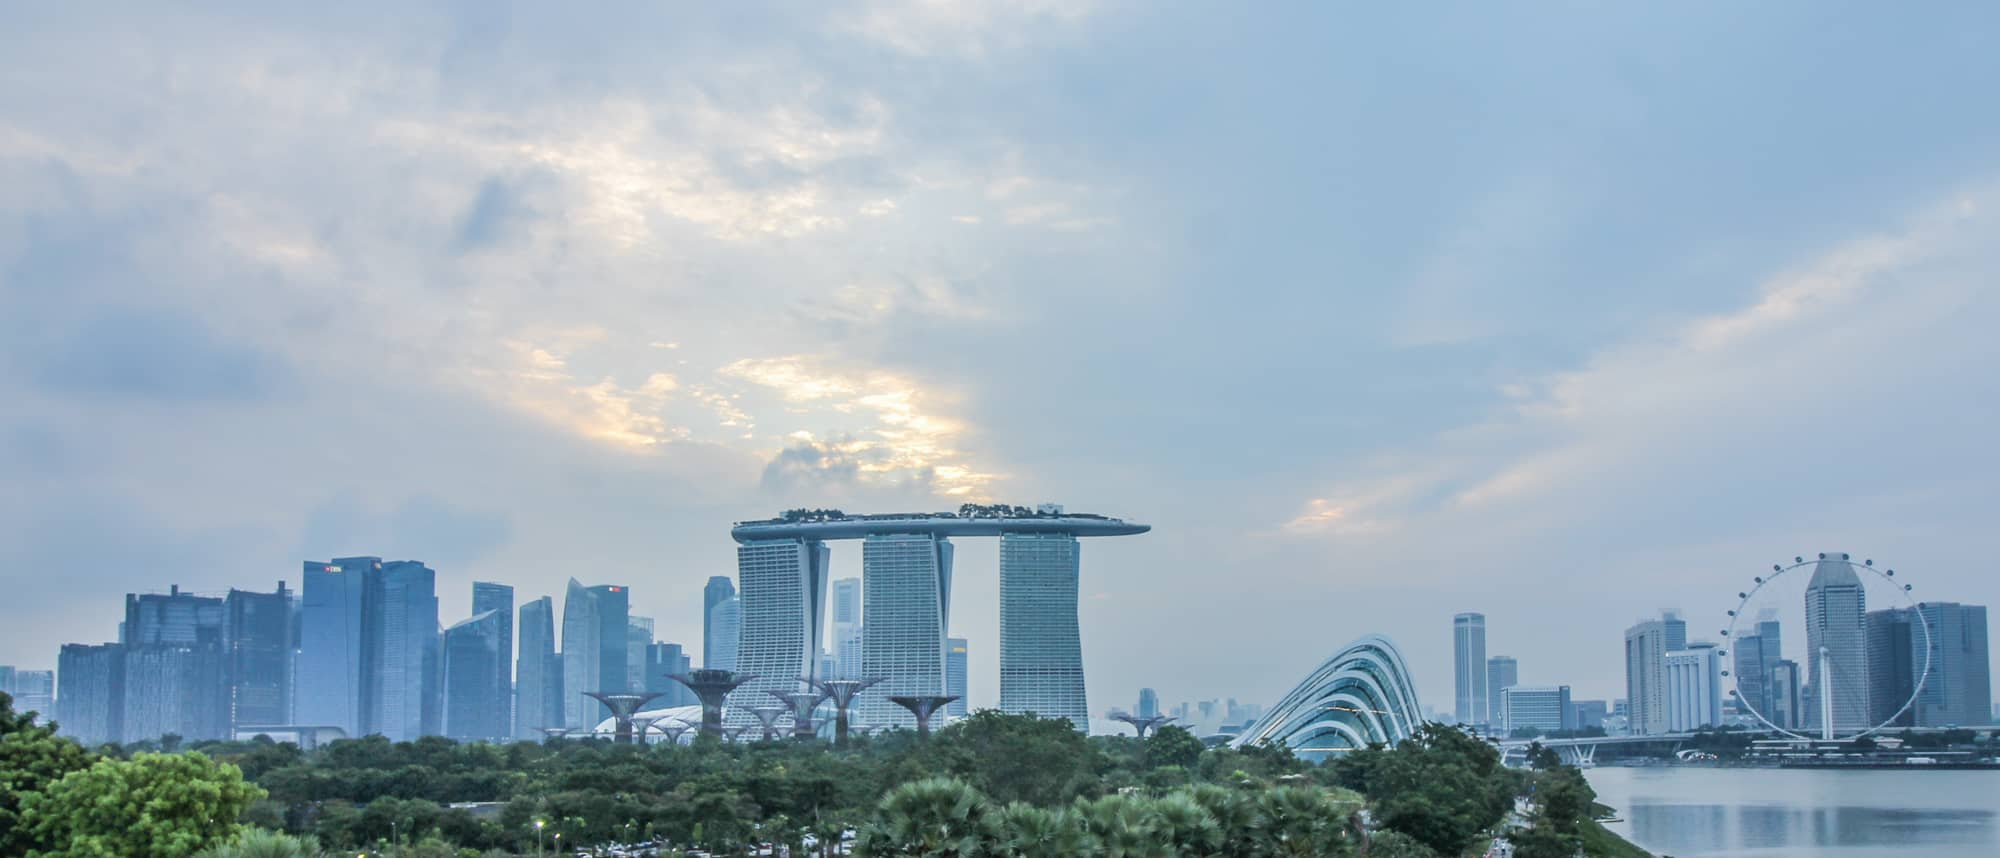 Foto-Highlights in Singapur: Skyline von Marina Barrage